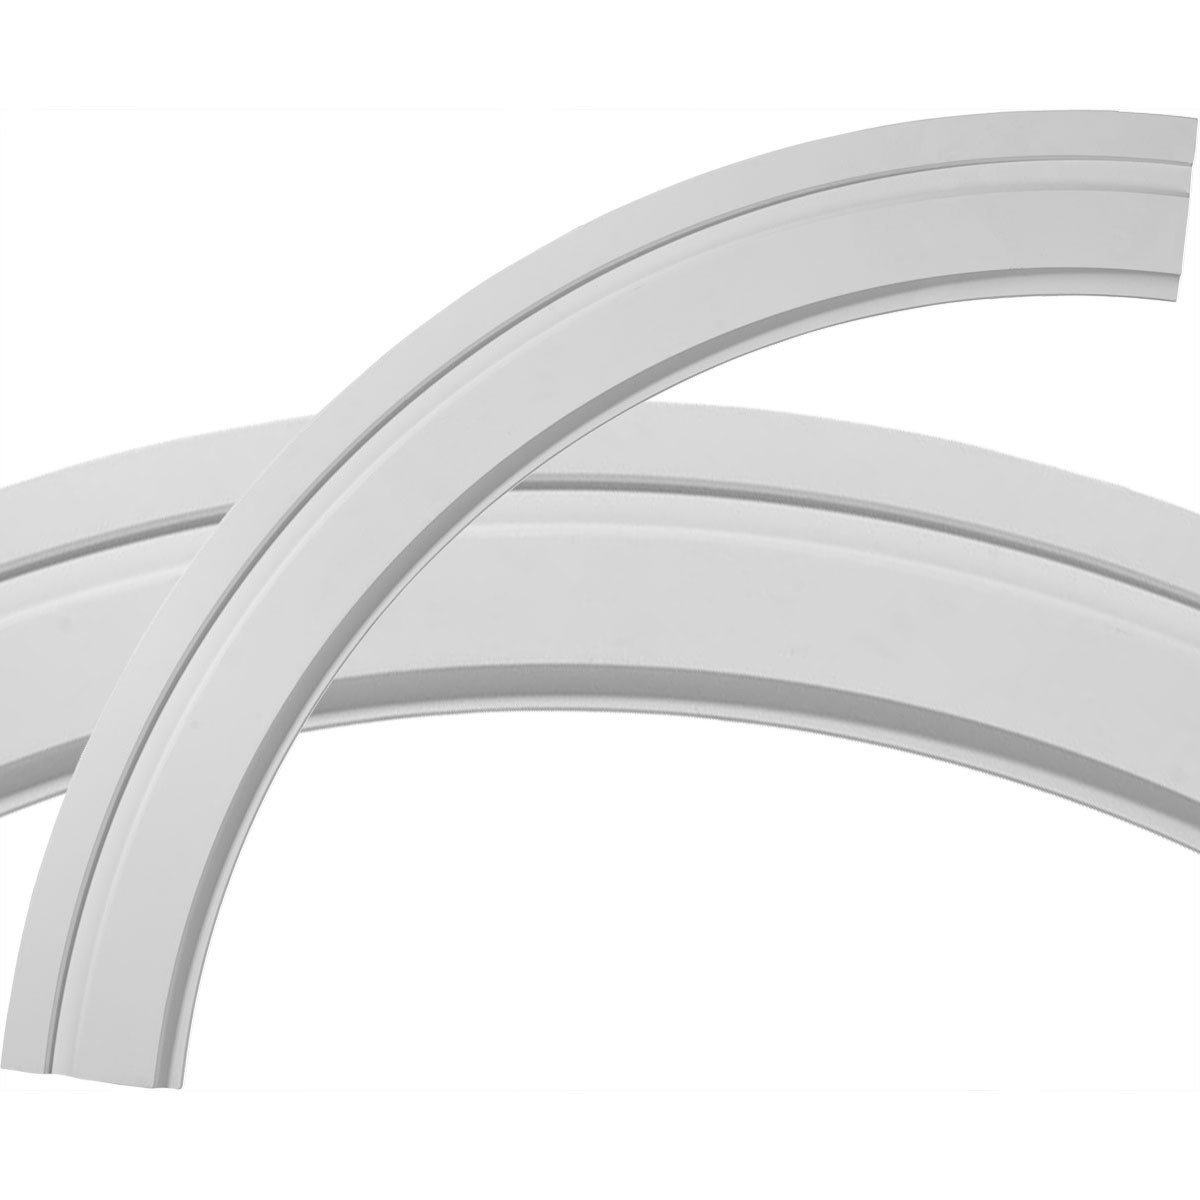 """EM-CR47MO - 47 1/2""""OD x 39 1/4""""ID x 4 1/8""""W x 7/8""""P Monique Ceiling Ring (1/4 of complete circle)"""